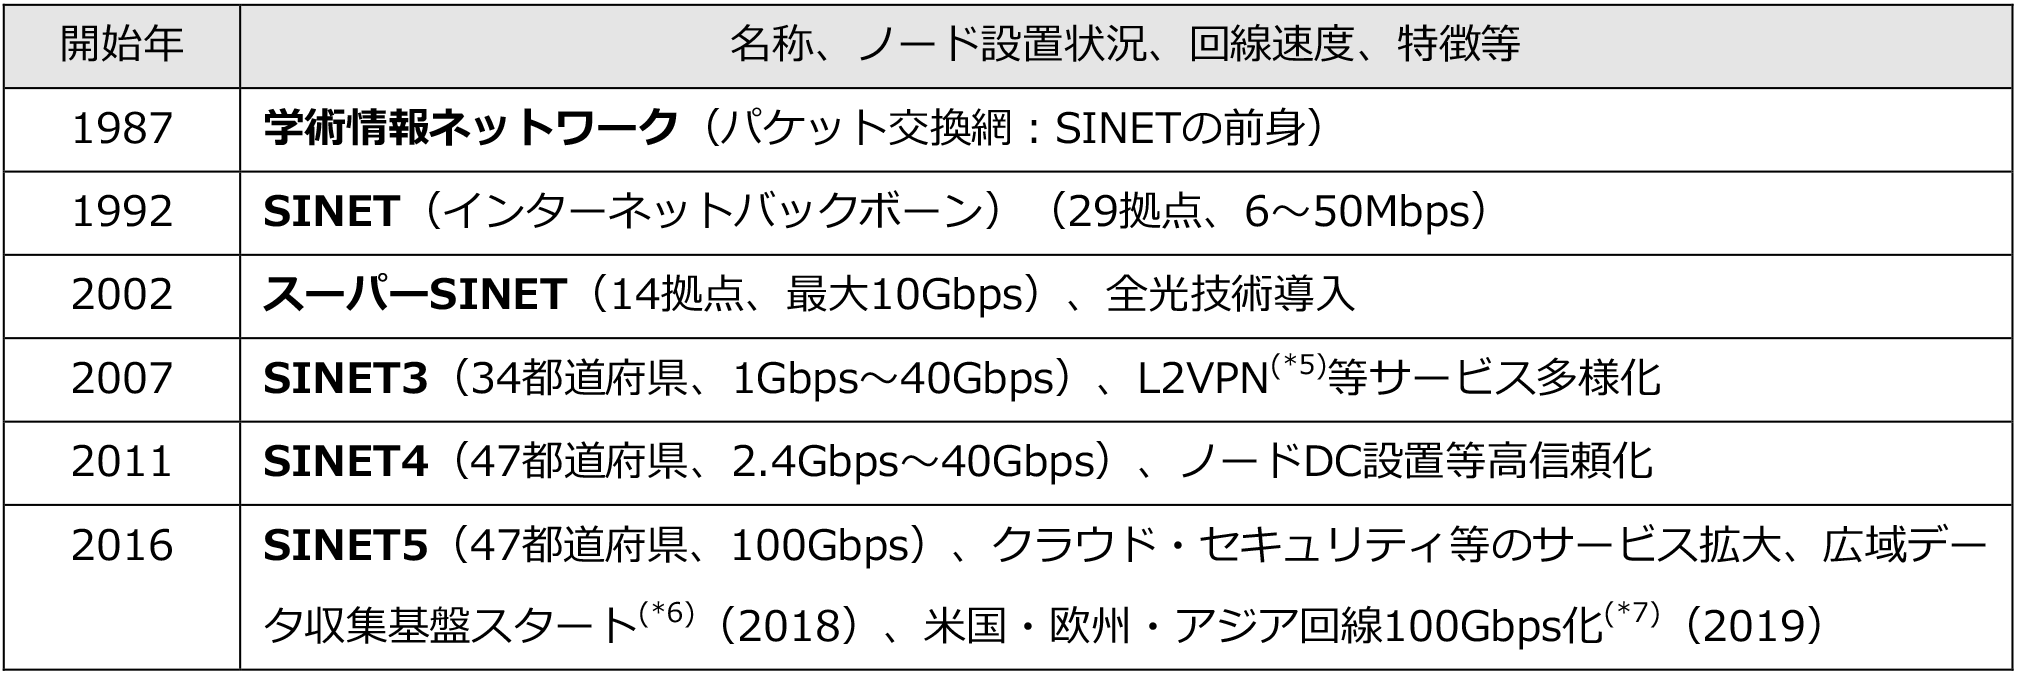 nii_newsrelease_20190313_table2.png